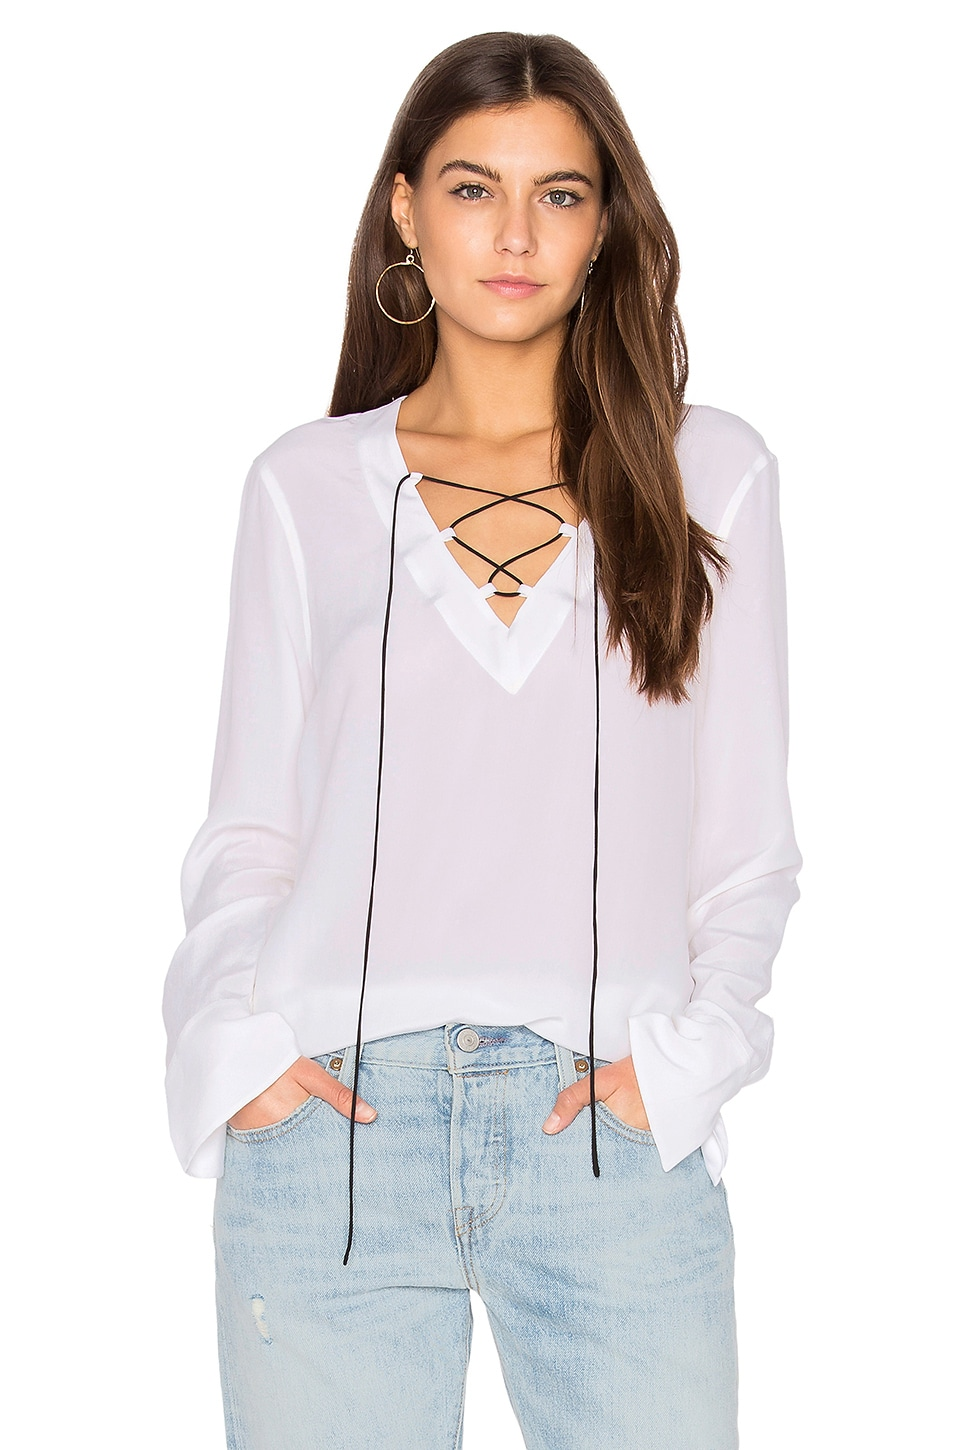 Equipment Avianna Top in Bright White